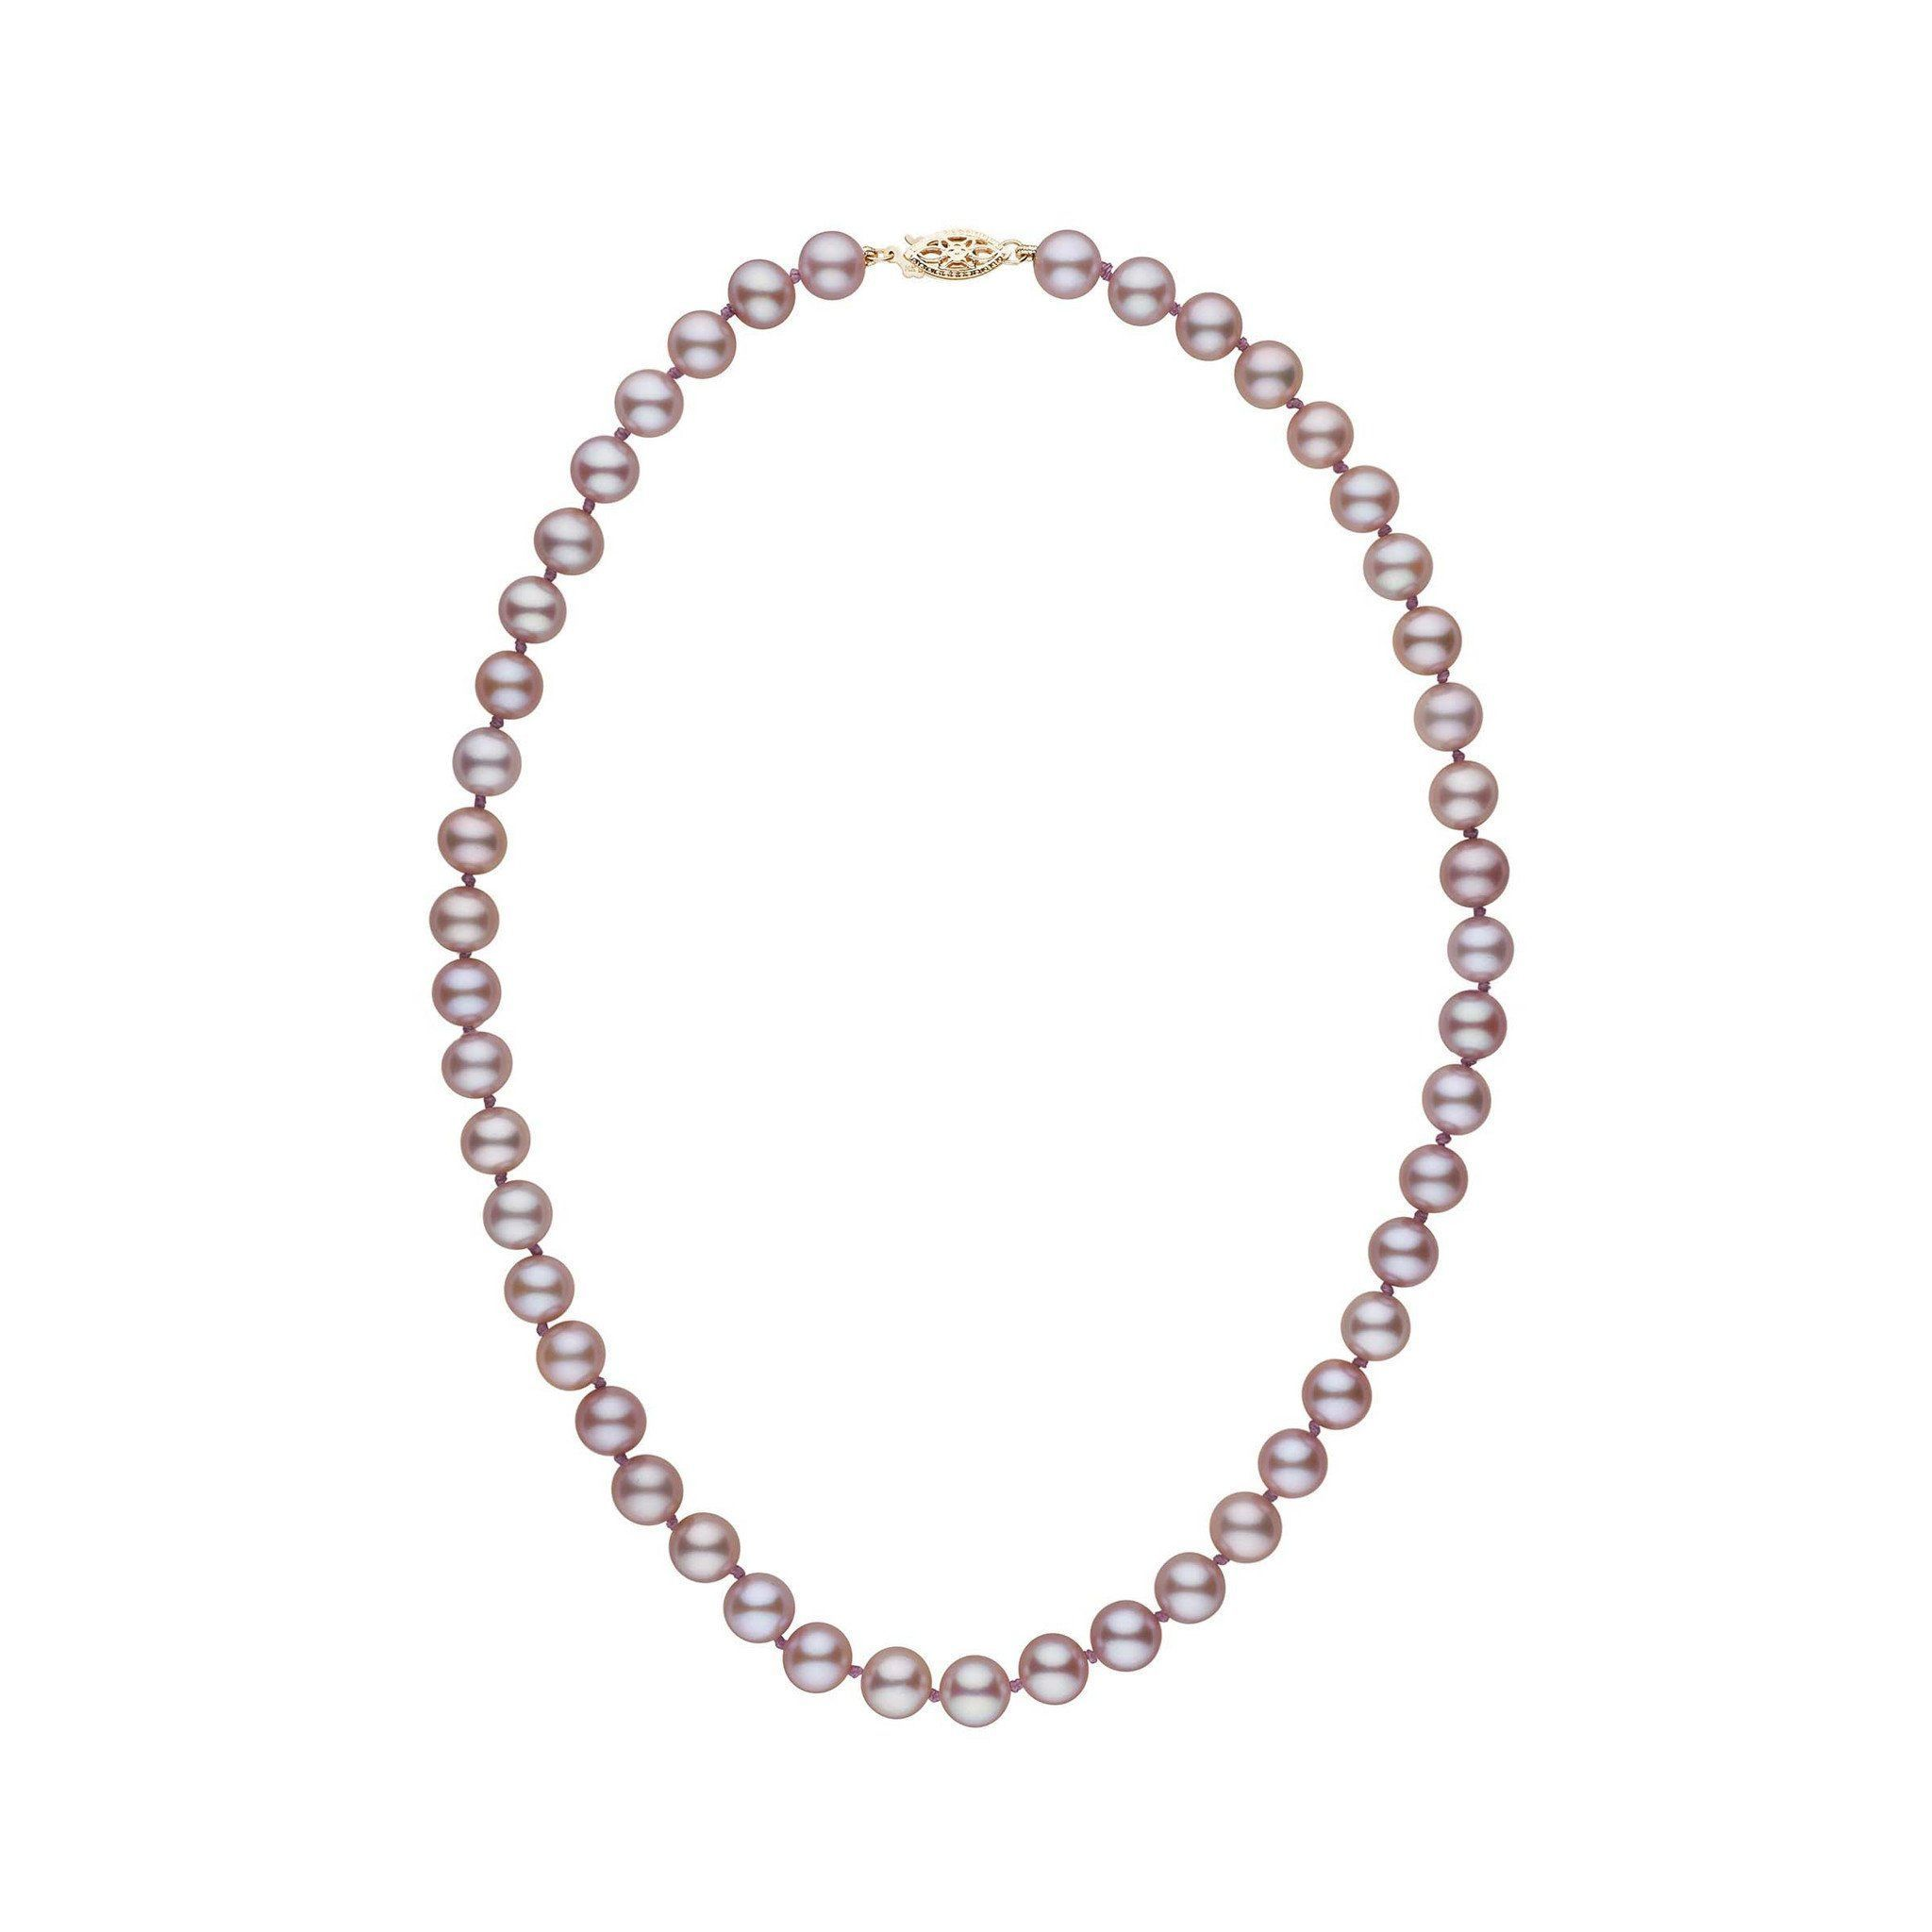 7.5-8.0 mm 16 inch AAA Lavender Freshwater Pearl Necklace